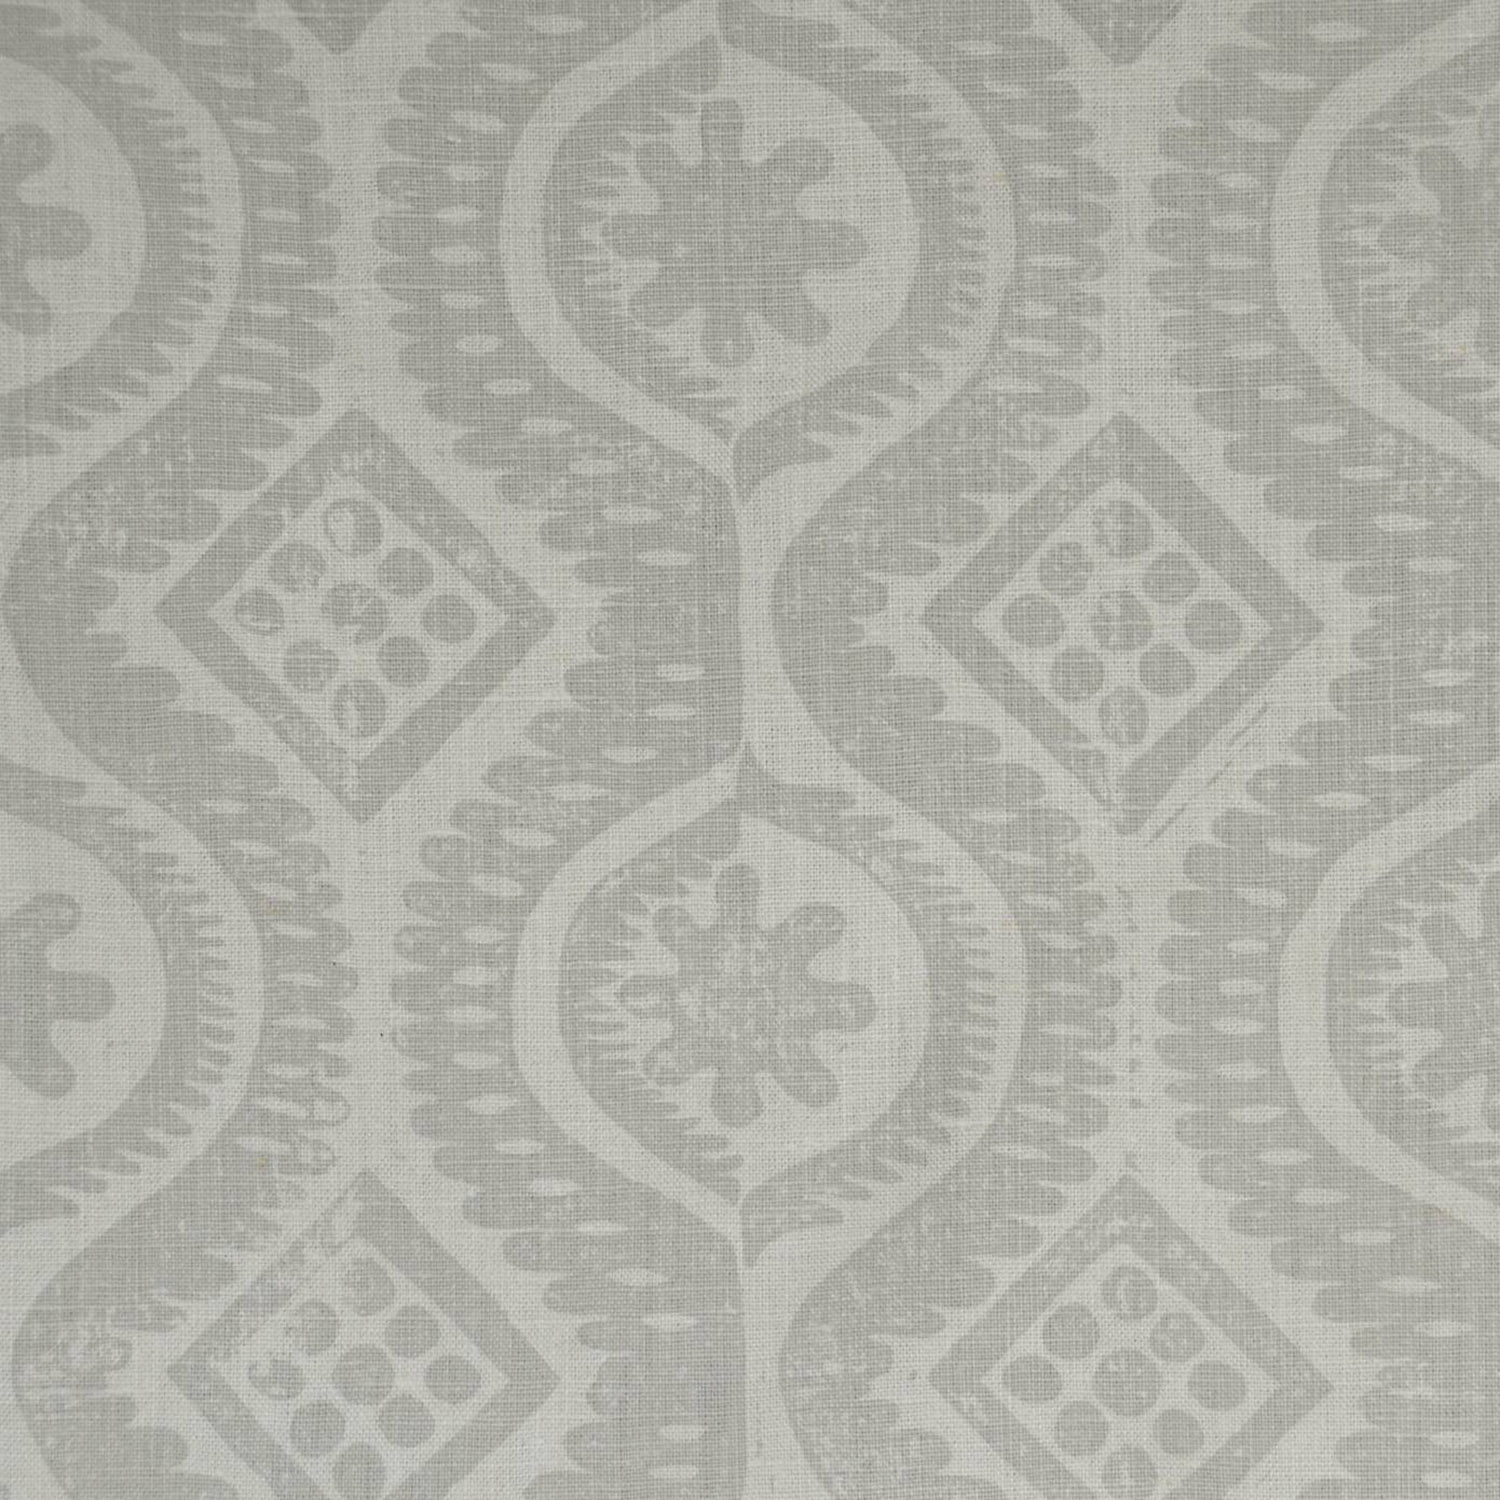 <p><strong>DAMASK</strong>pale taupe 6500-11<a href=/the-peggy-angus-collection/damask-pale-taupe-6500-11>More →</a></p>